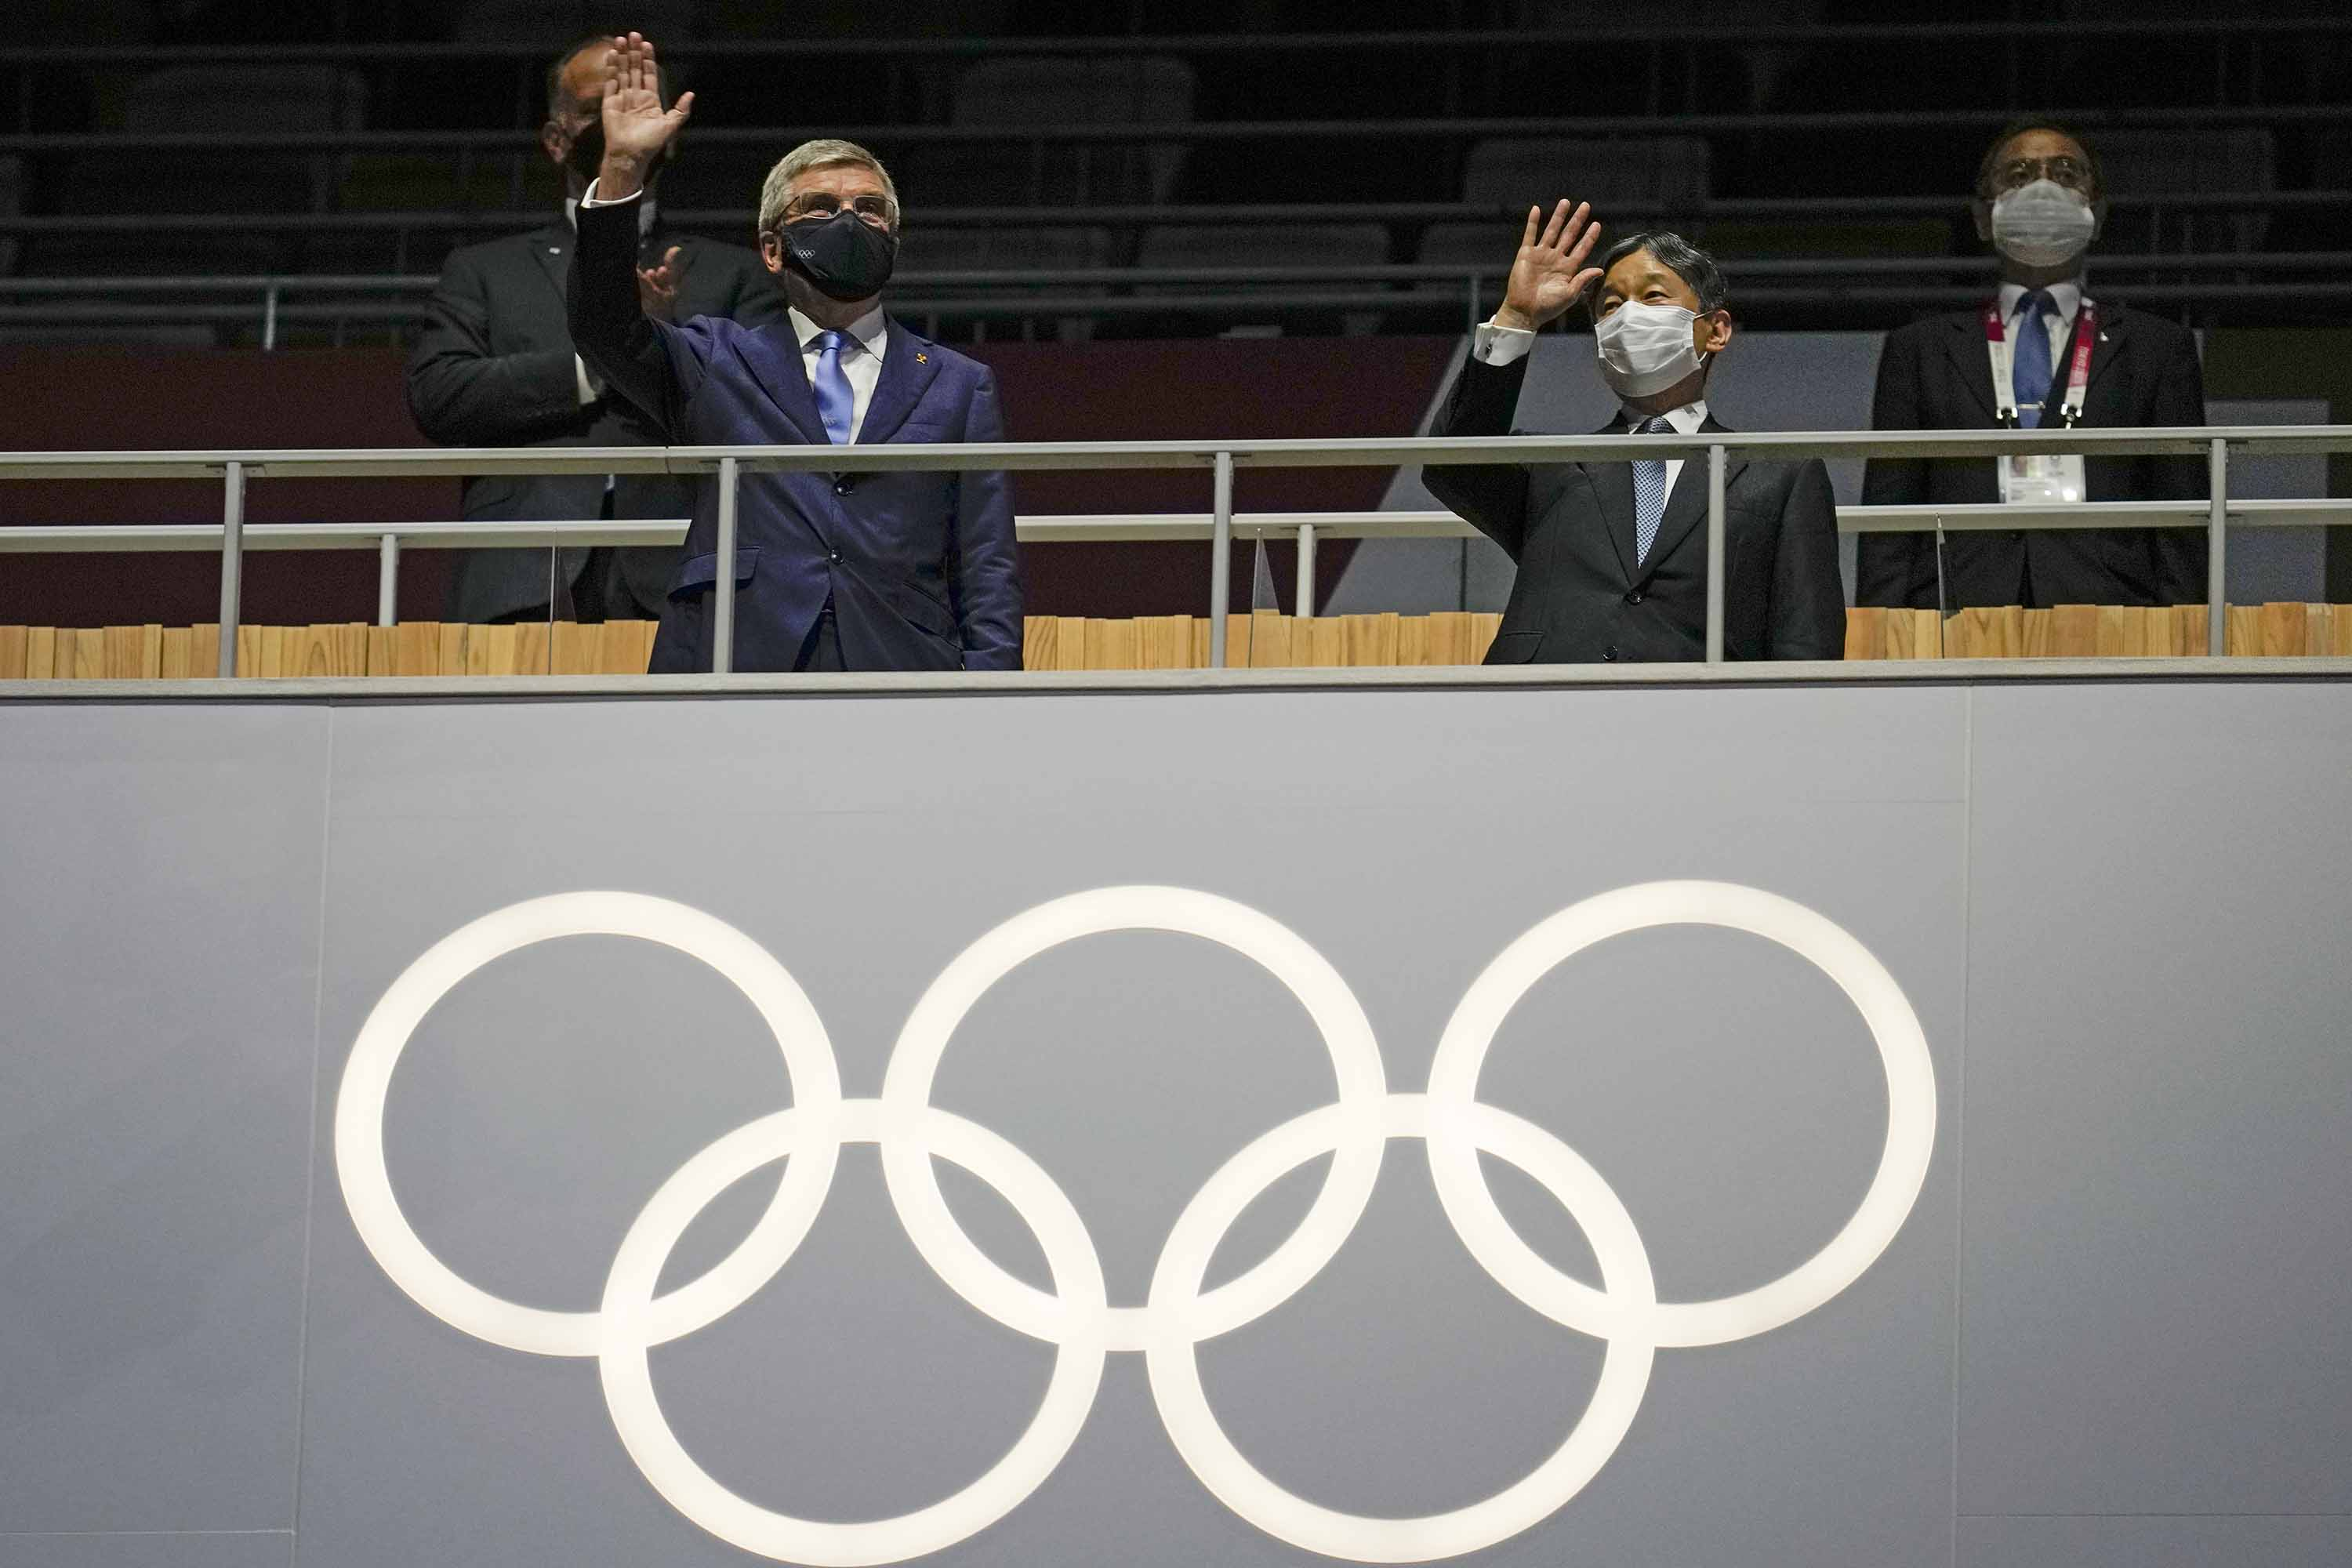 Japan's Emperor Naruhito, right, and President of the IOC Thomas Bach wave during the Opening Ceremony.